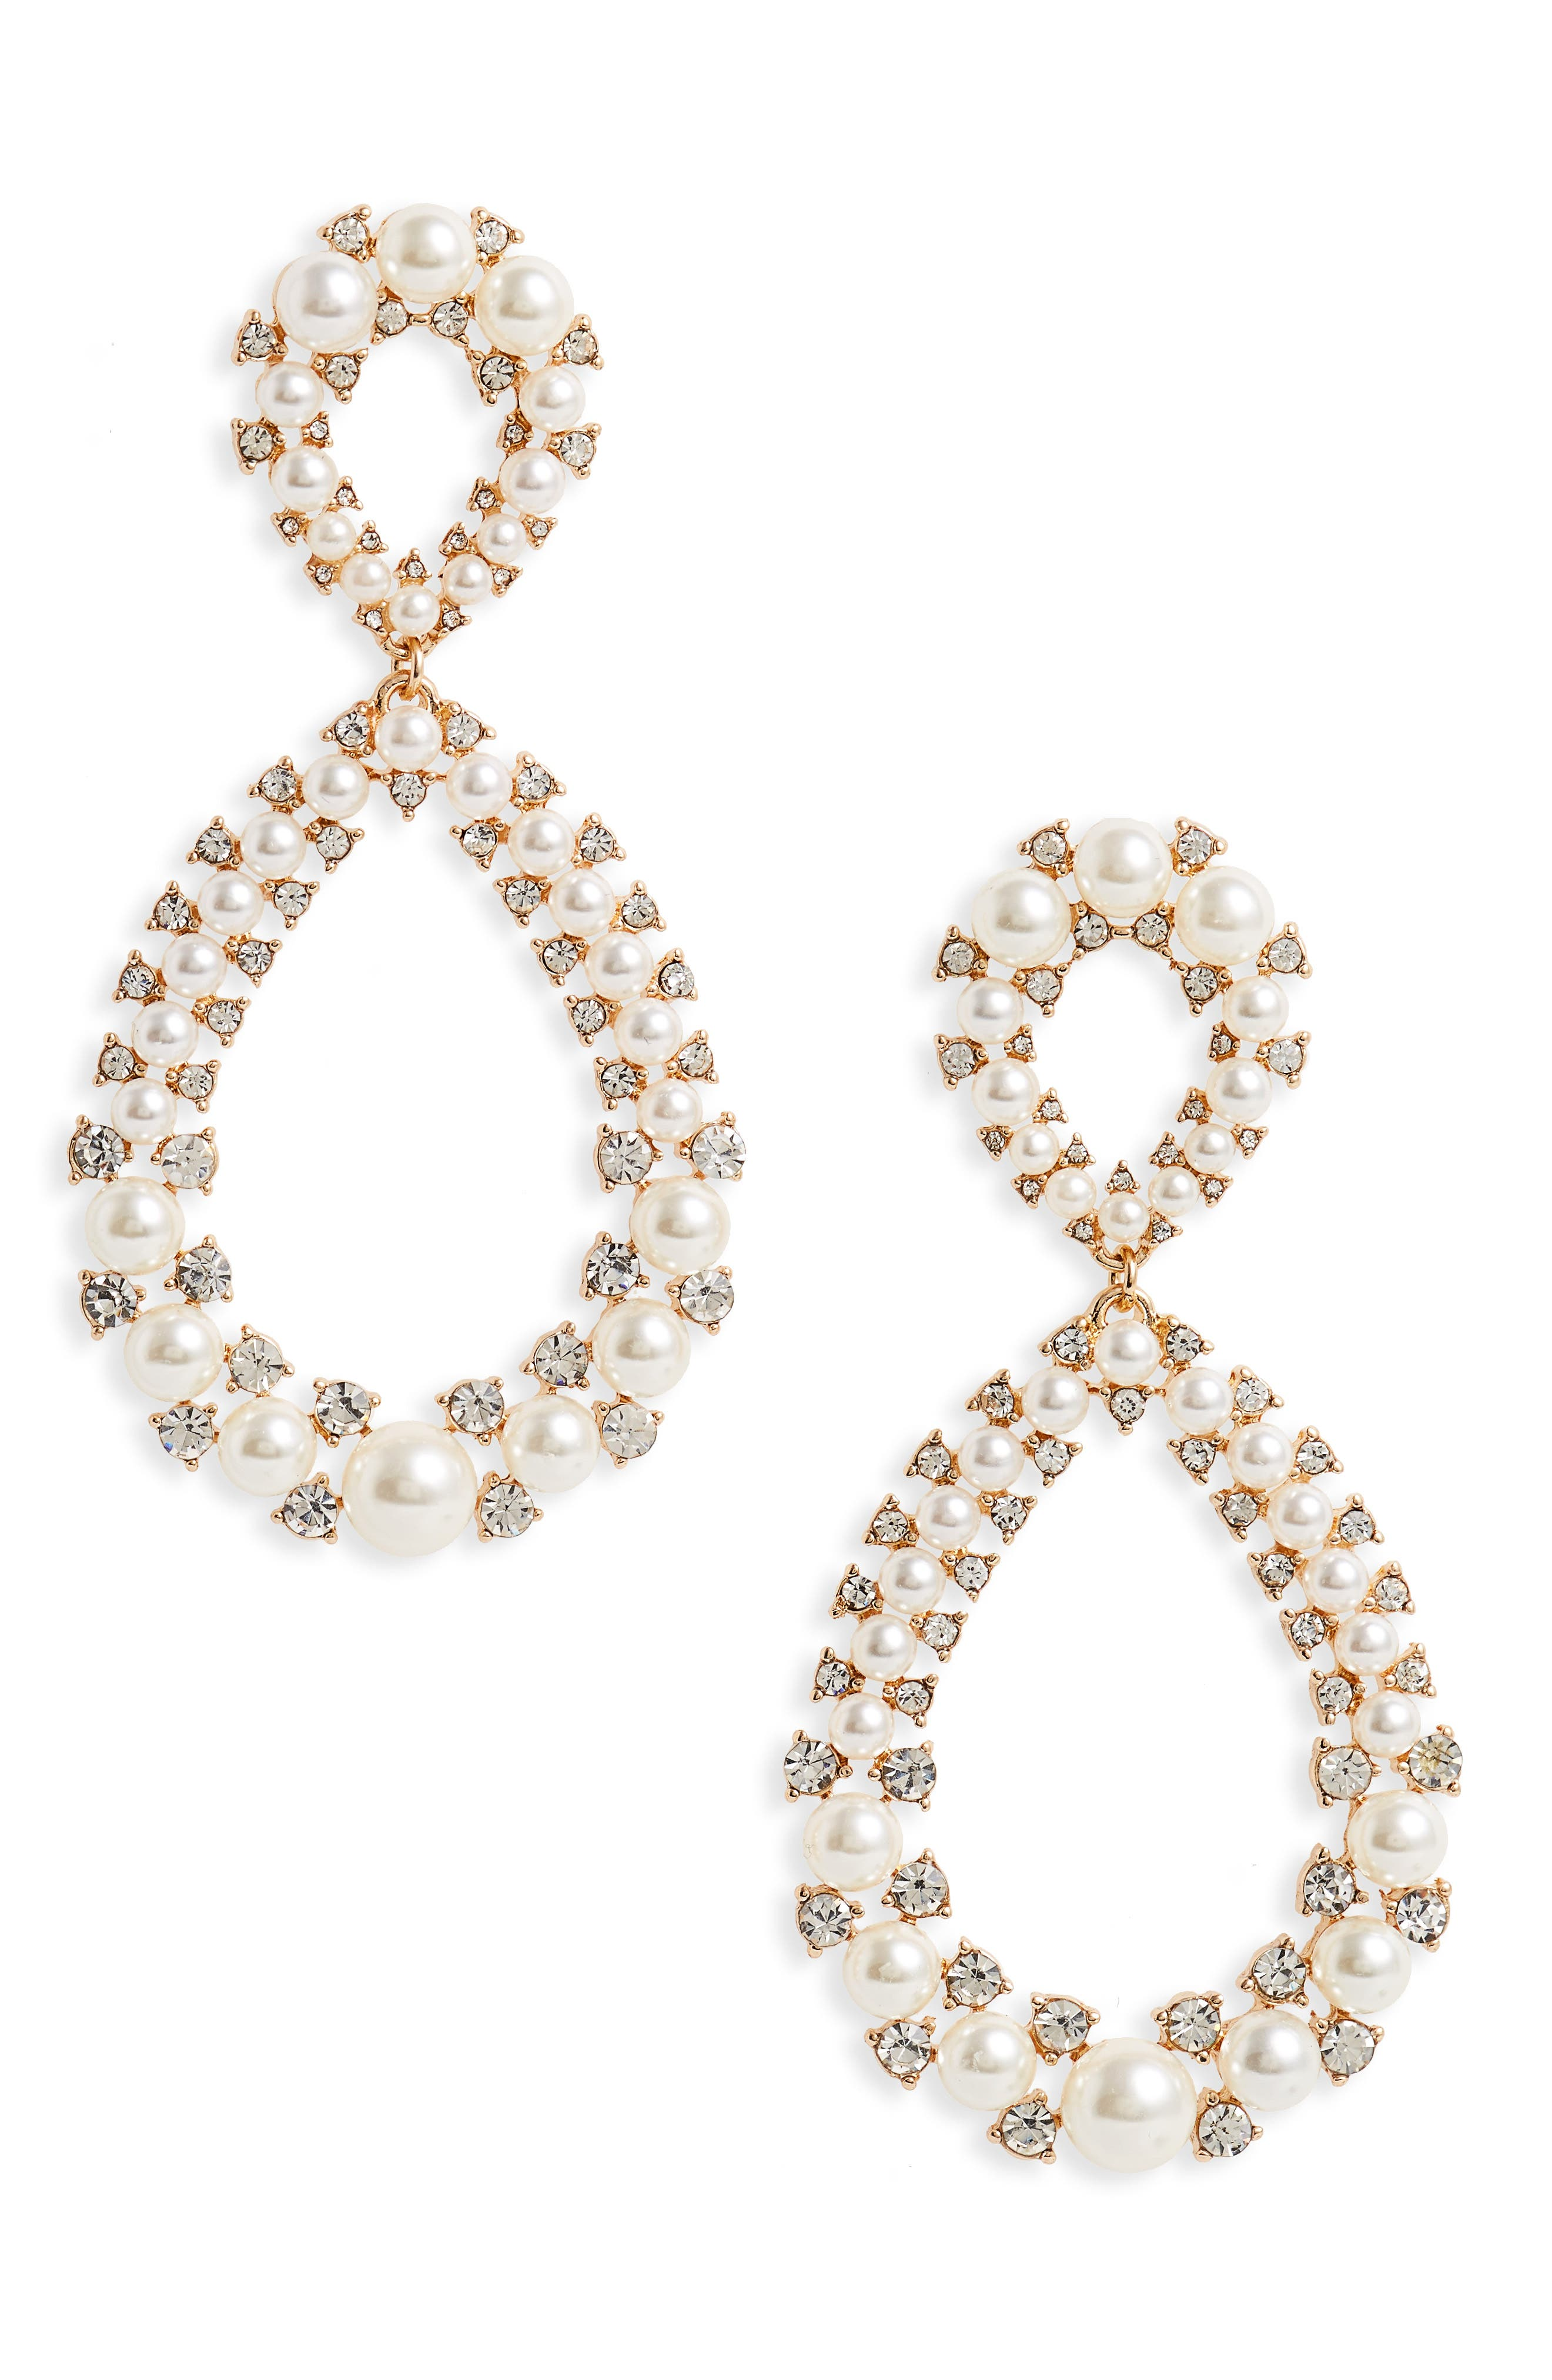 Alternate Image 1 Selected - Kitsch Imitation Pearl & Crystal Statement Earrings